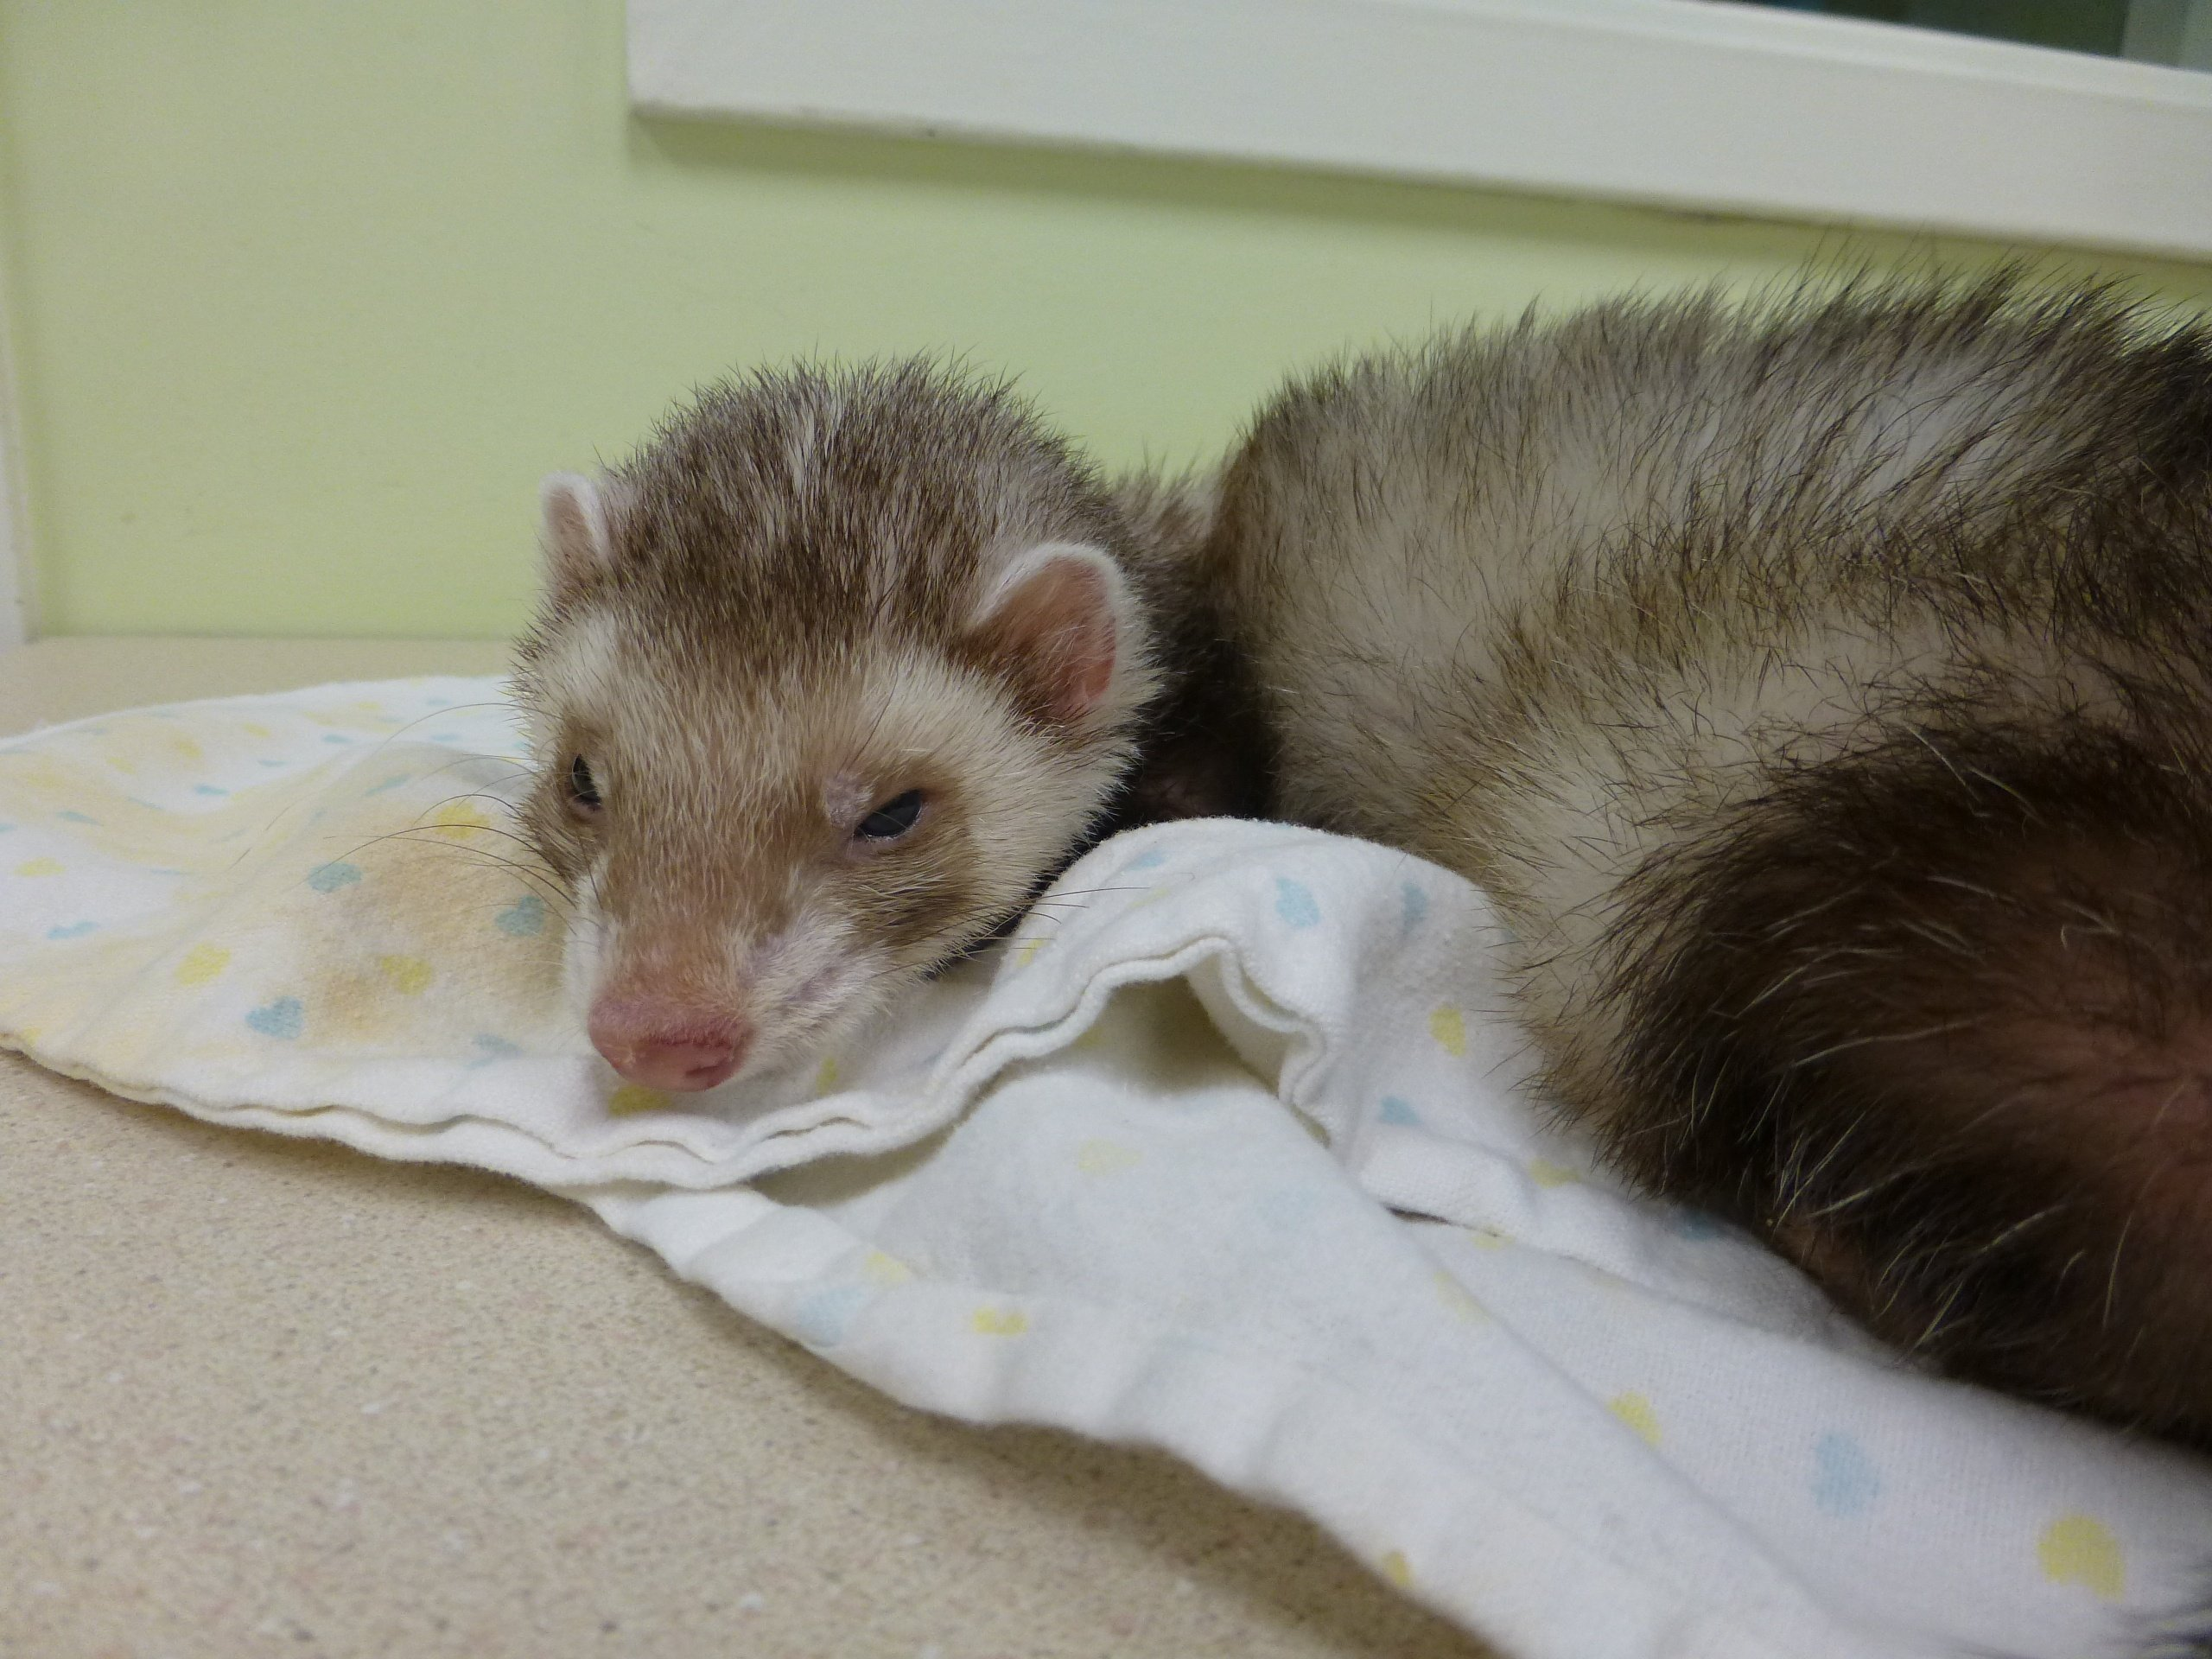 Ferret with low blood glucose